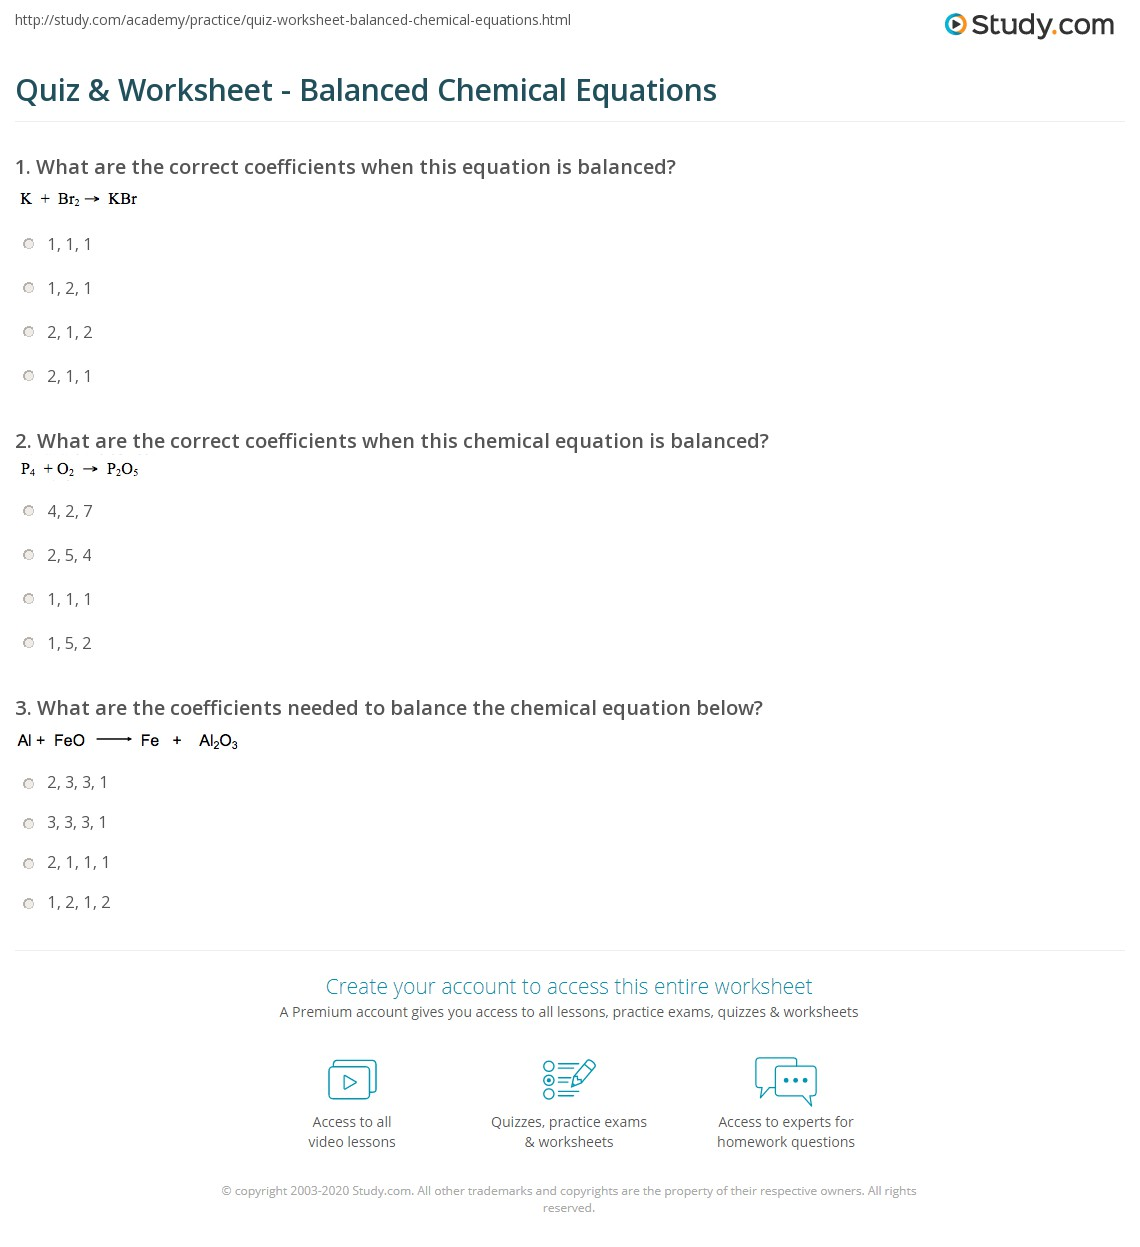 Quiz & Worksheet - Balanced Chemical Equations | Study.com